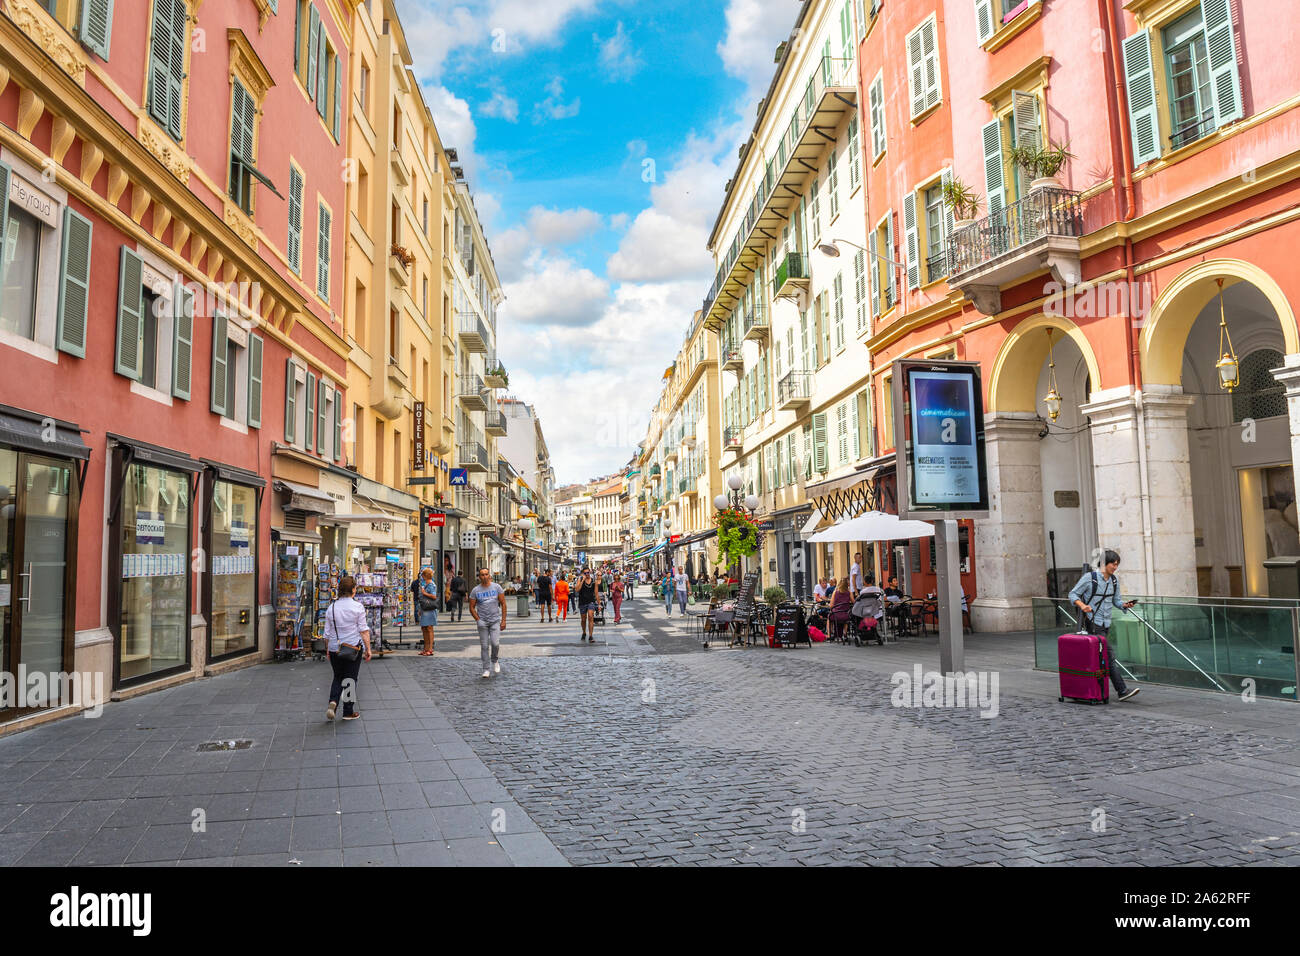 Tourists shop and dine at cafes along one of the main streets near Old Town Nice, in the Mediterranean city of Nice, France. Stock Photo